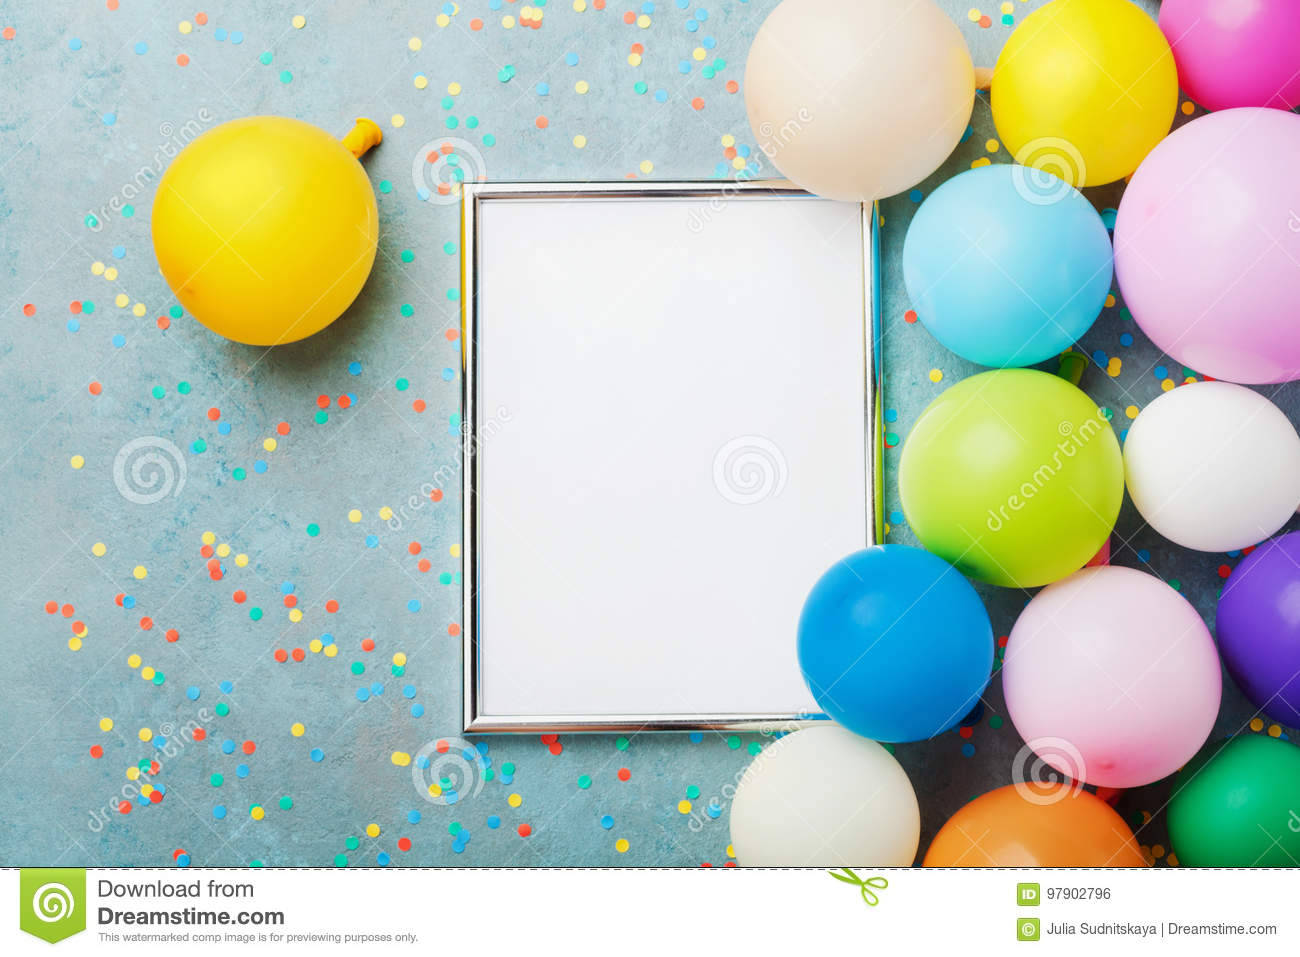 Colorful balloons, silver frame and confetti on blue table top view. Birthday or party mockup for planning. Flat lay style.